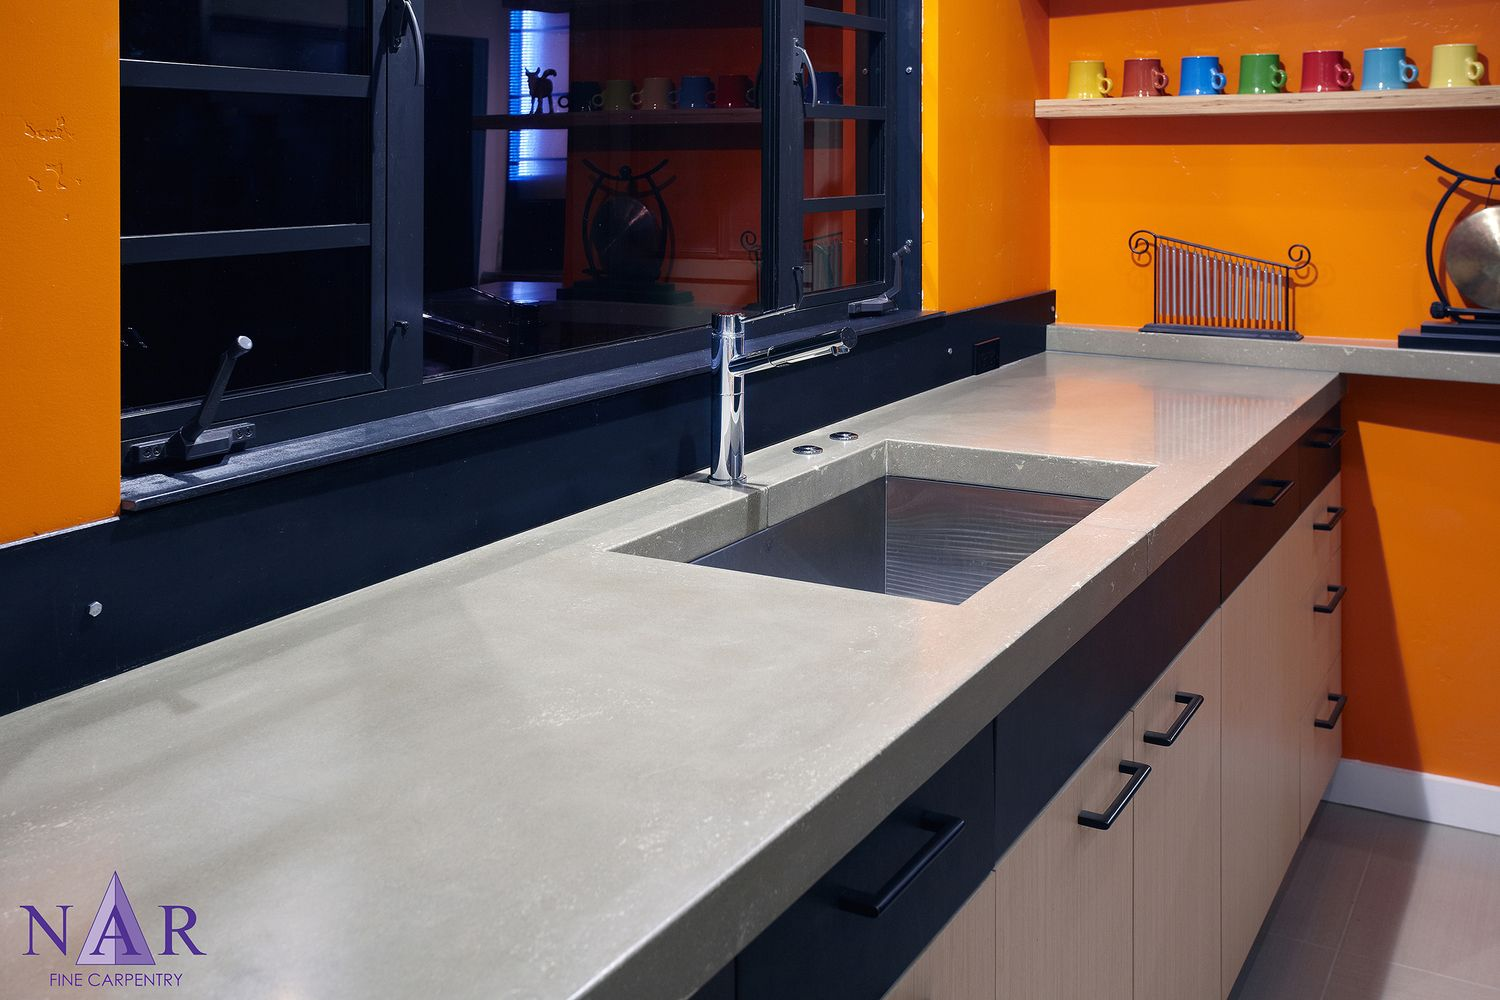 Concrete Counter Tops Complement The Window And Modern Undermount Stainless Steel Sink Narkitchens